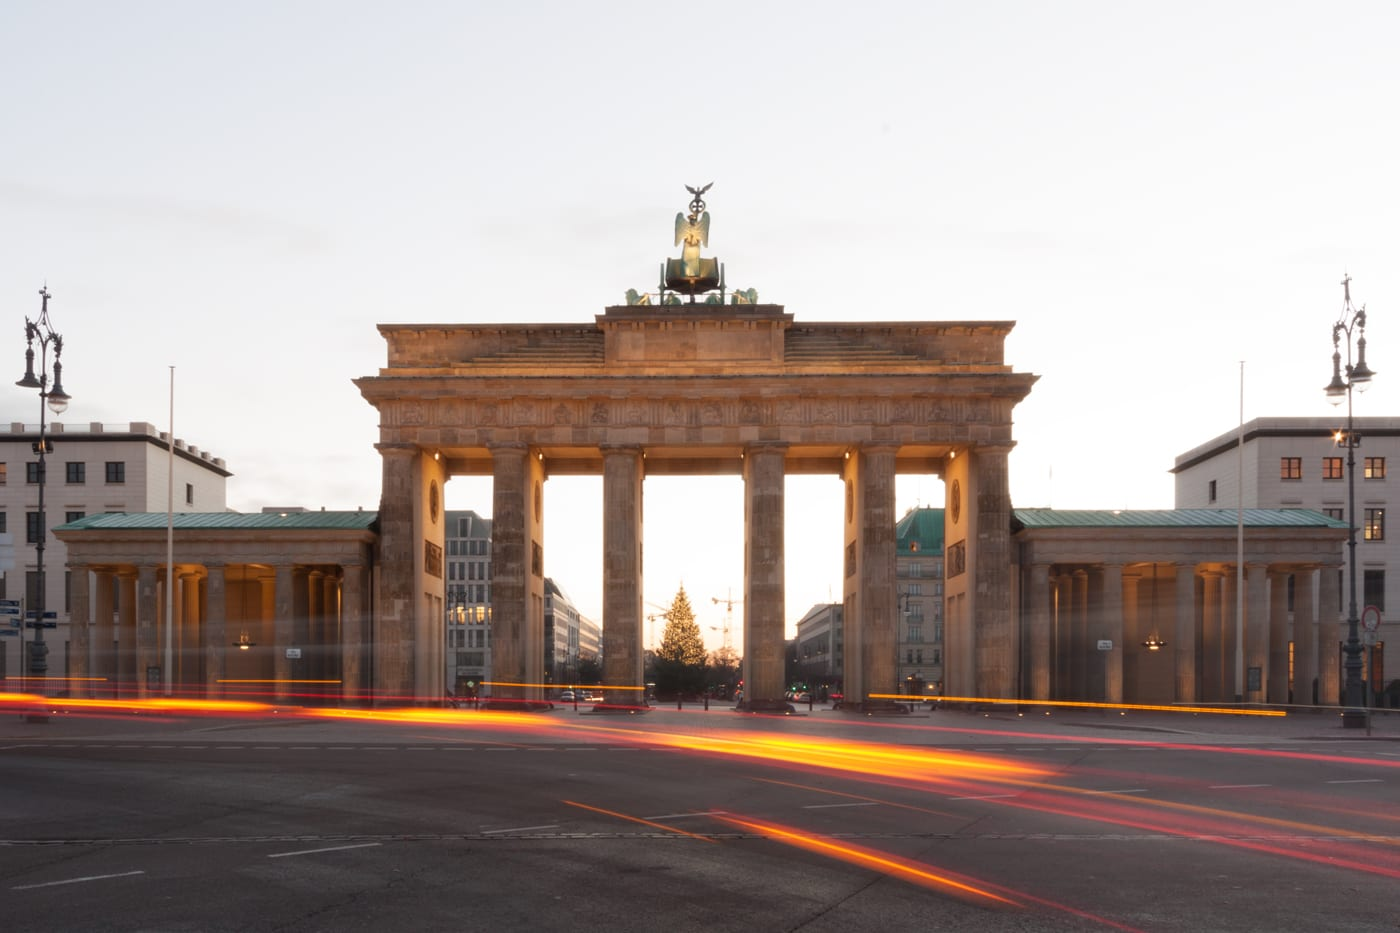 Before-Brandenburg Gate – West | Berlin, Germany